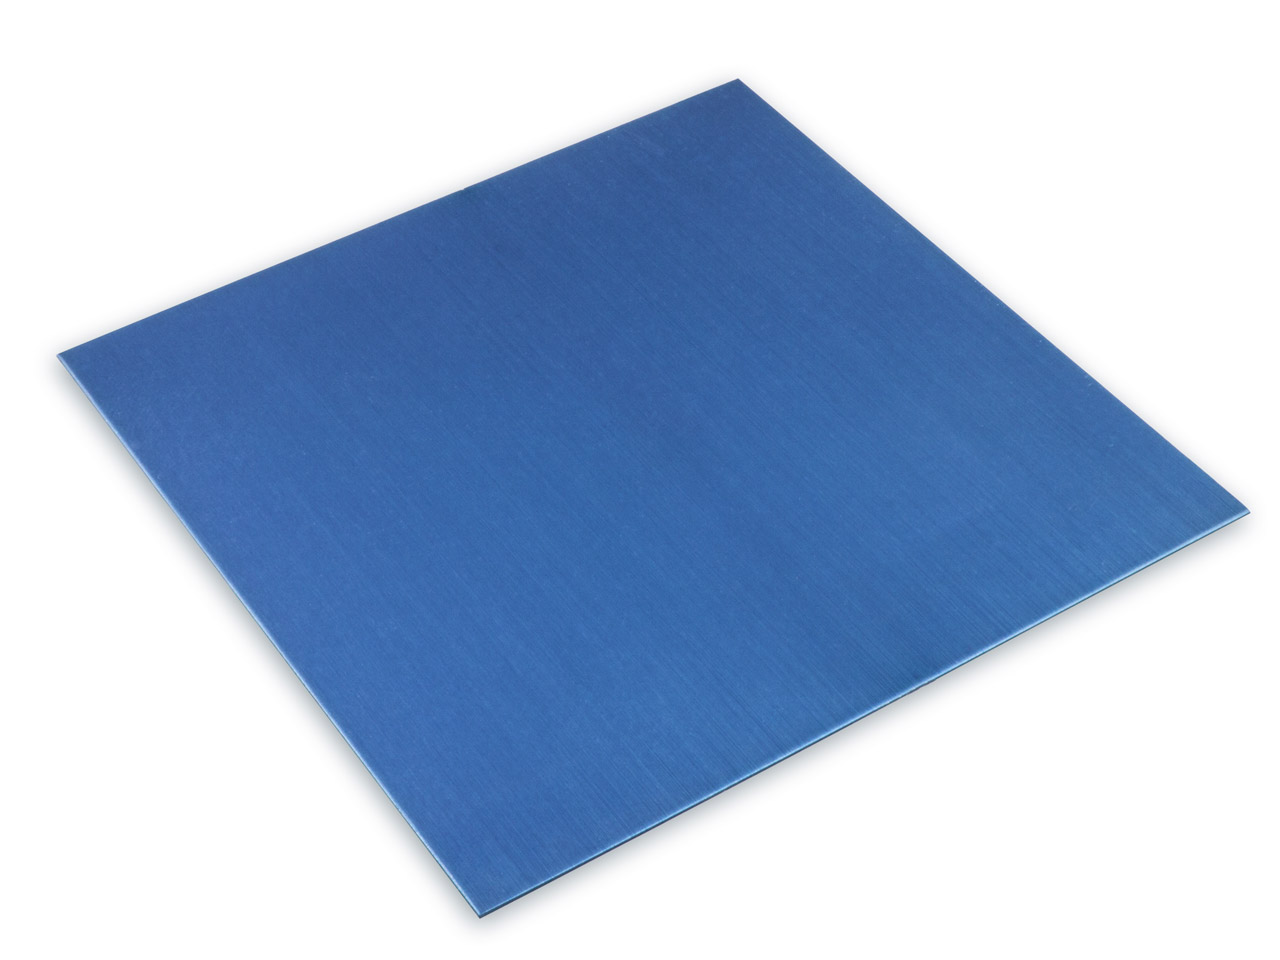 Anodised Coloured Blue Aluminium   Sheet 100x100x0.7mm